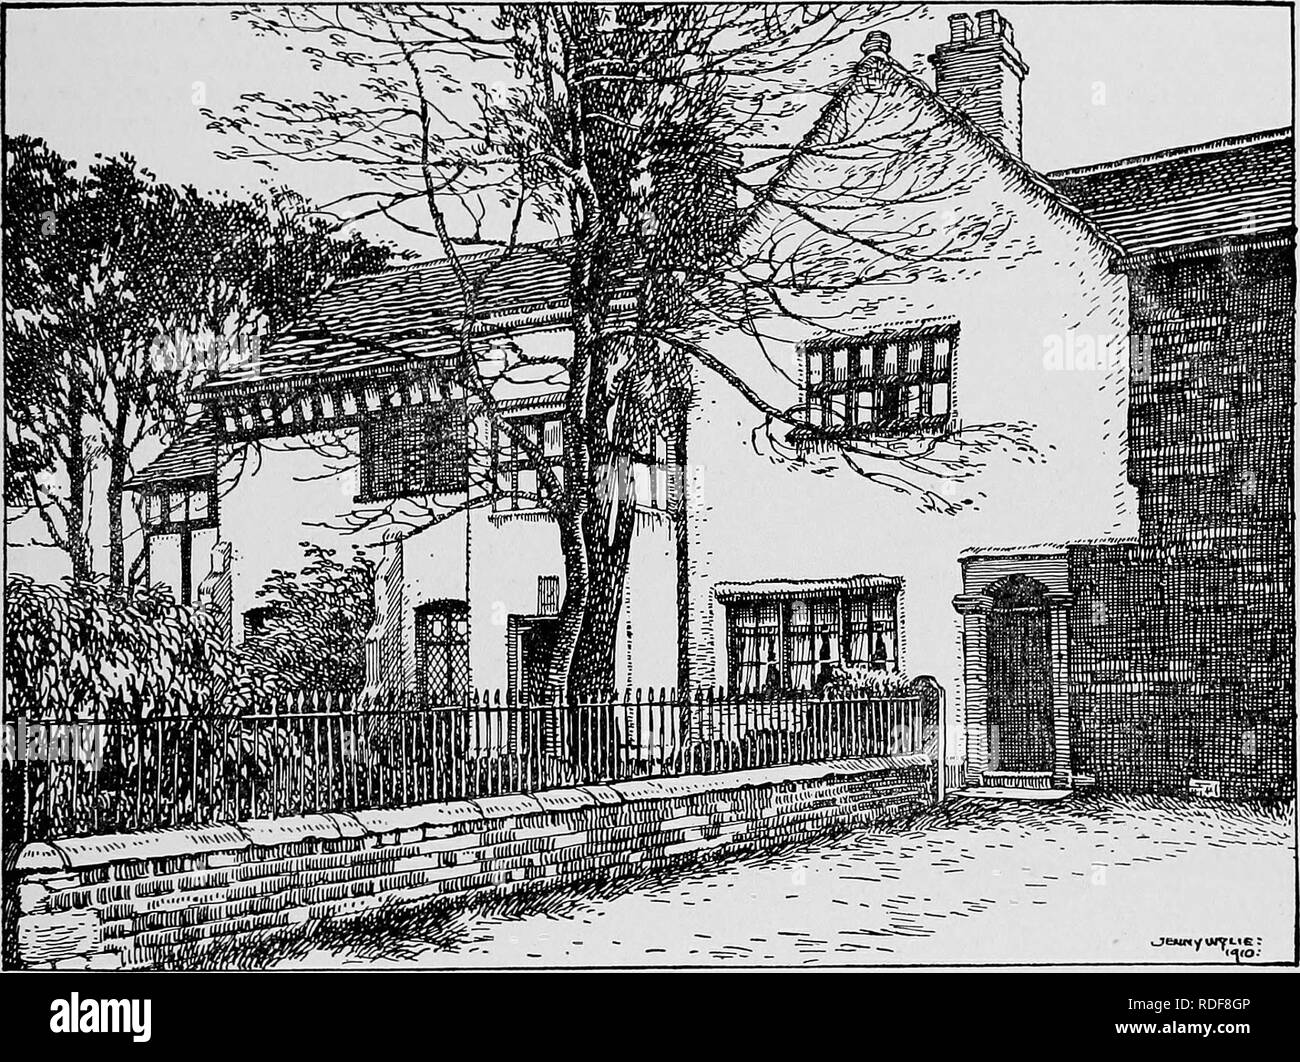 . The Victoria history of the county of Lancaster;. Natural history. SALFORD HUNDRED MANCHESTER north side of the house has been rebuilt in brick, probably in the 17th century, and in recent years has been covered with plaster. The south side has been treated in a similar manner, and the plaster lined to represent stone, so that the north and south walls present little or nothing of their ancient appearance, except in the upper windows, which preserve their muUions and transoms, and in the wood and plaster cove under the eaves. The roofs are covered with grey stone slates, and the chimneys are Stock Photo